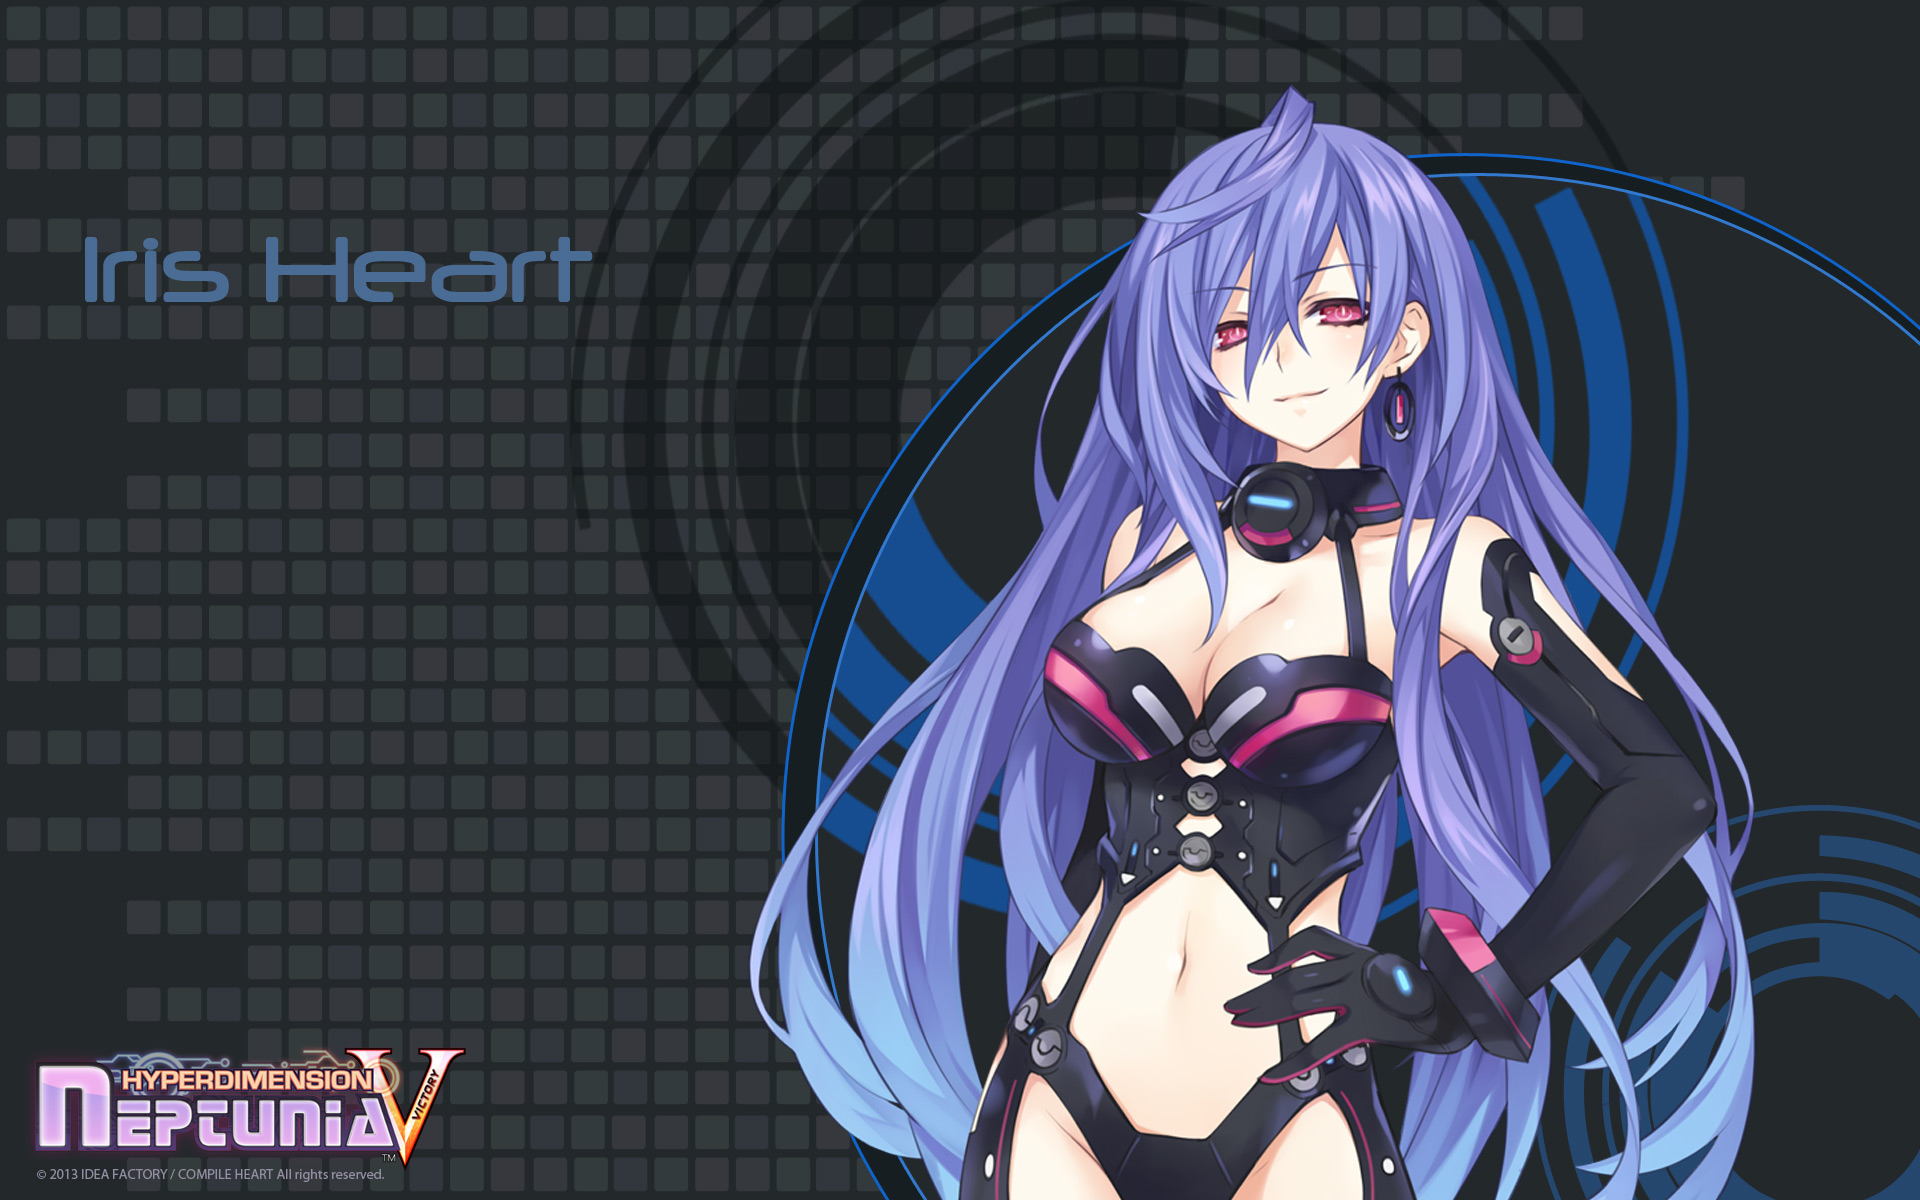 Konachan.com - 156089 blue_hair hyperdimension_neptunia iris_heart long_hair red_eyes tsunako